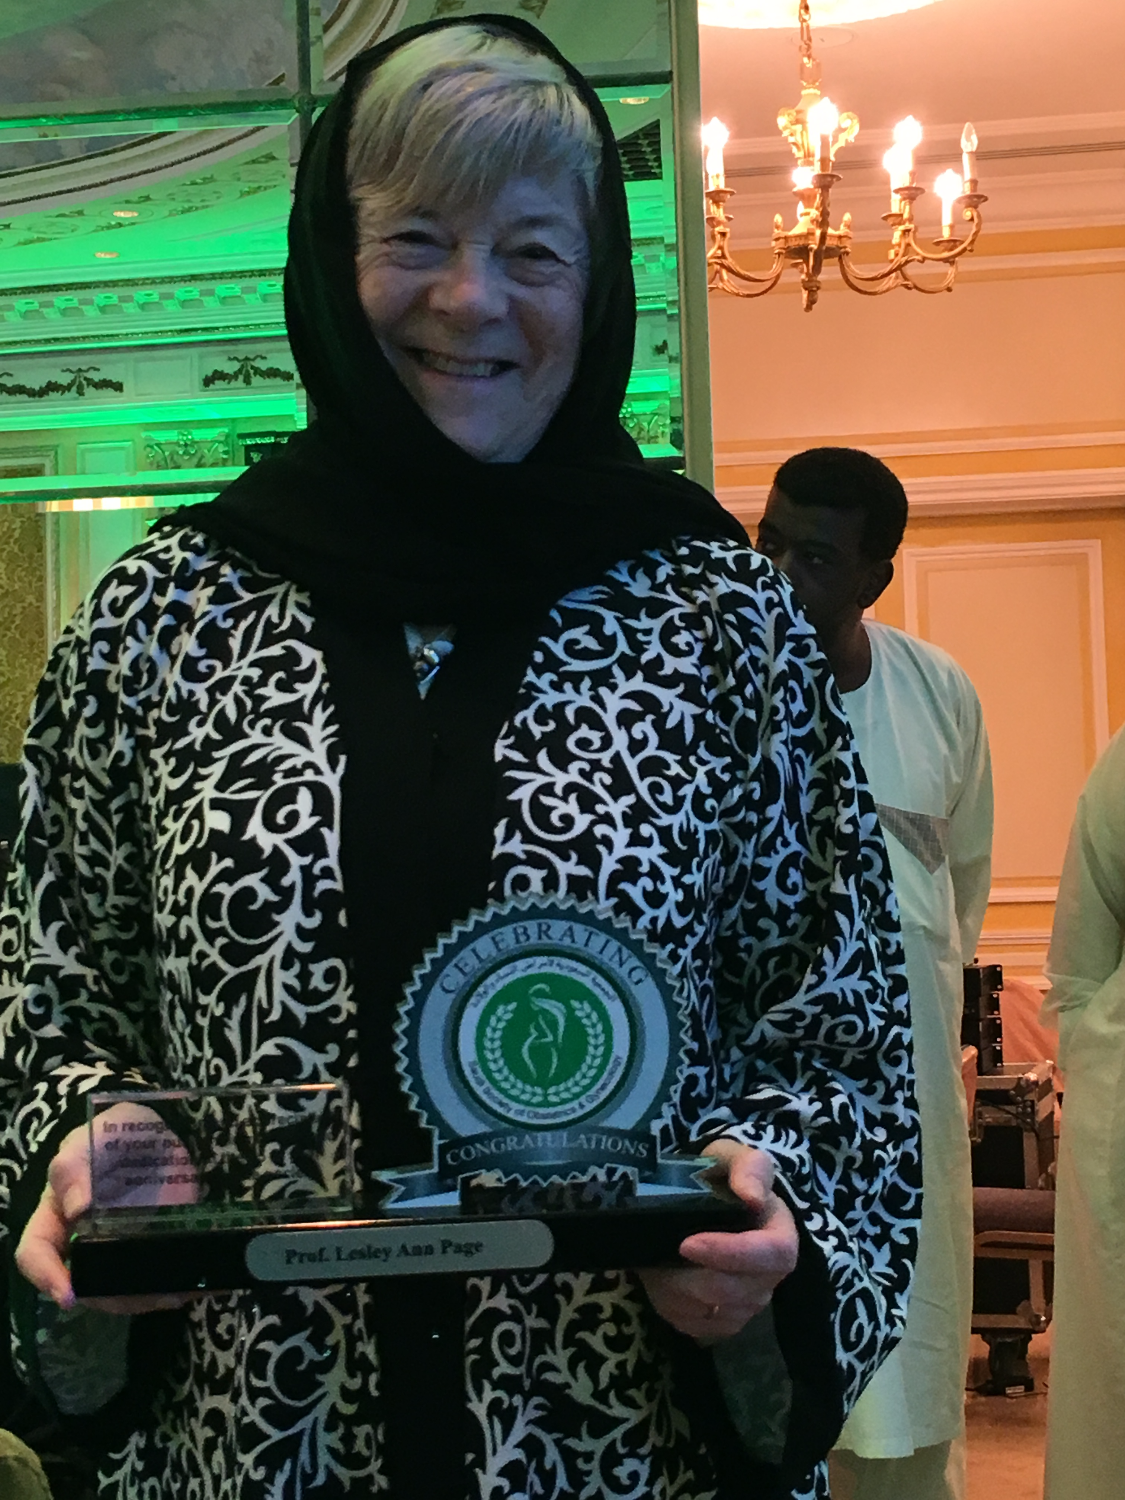 Dr. Lesley : Honored to be awarded